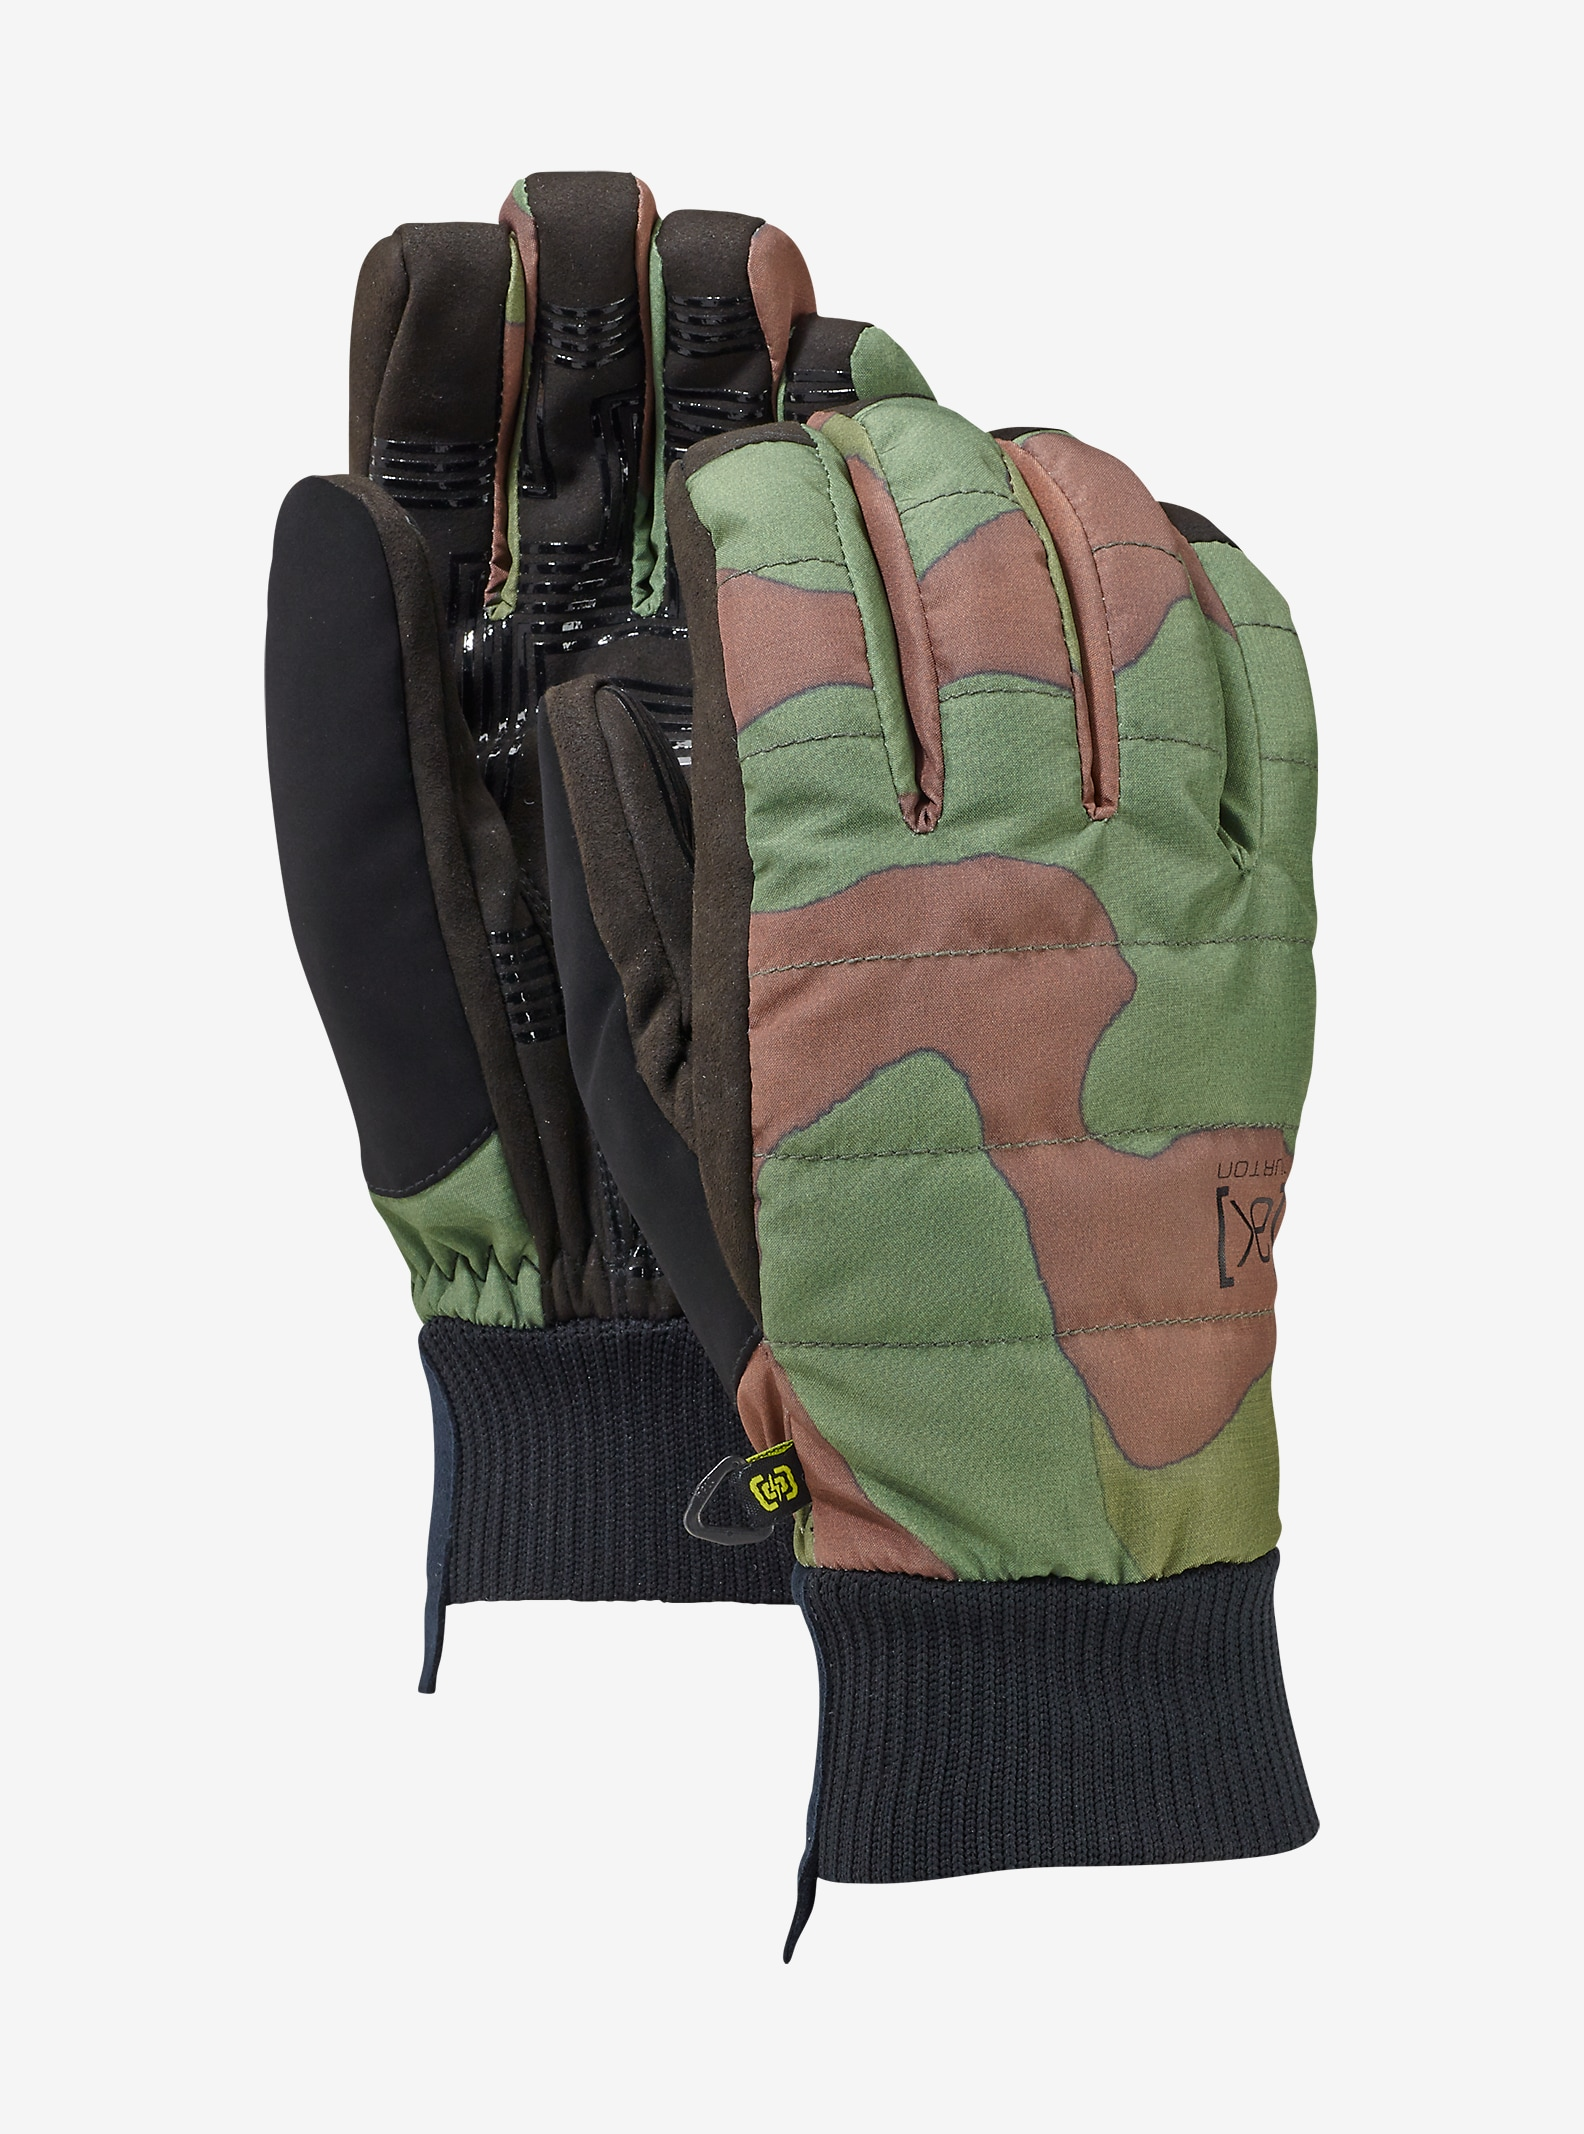 Burton [ak] Insulator Glove shown in Hombre Camo